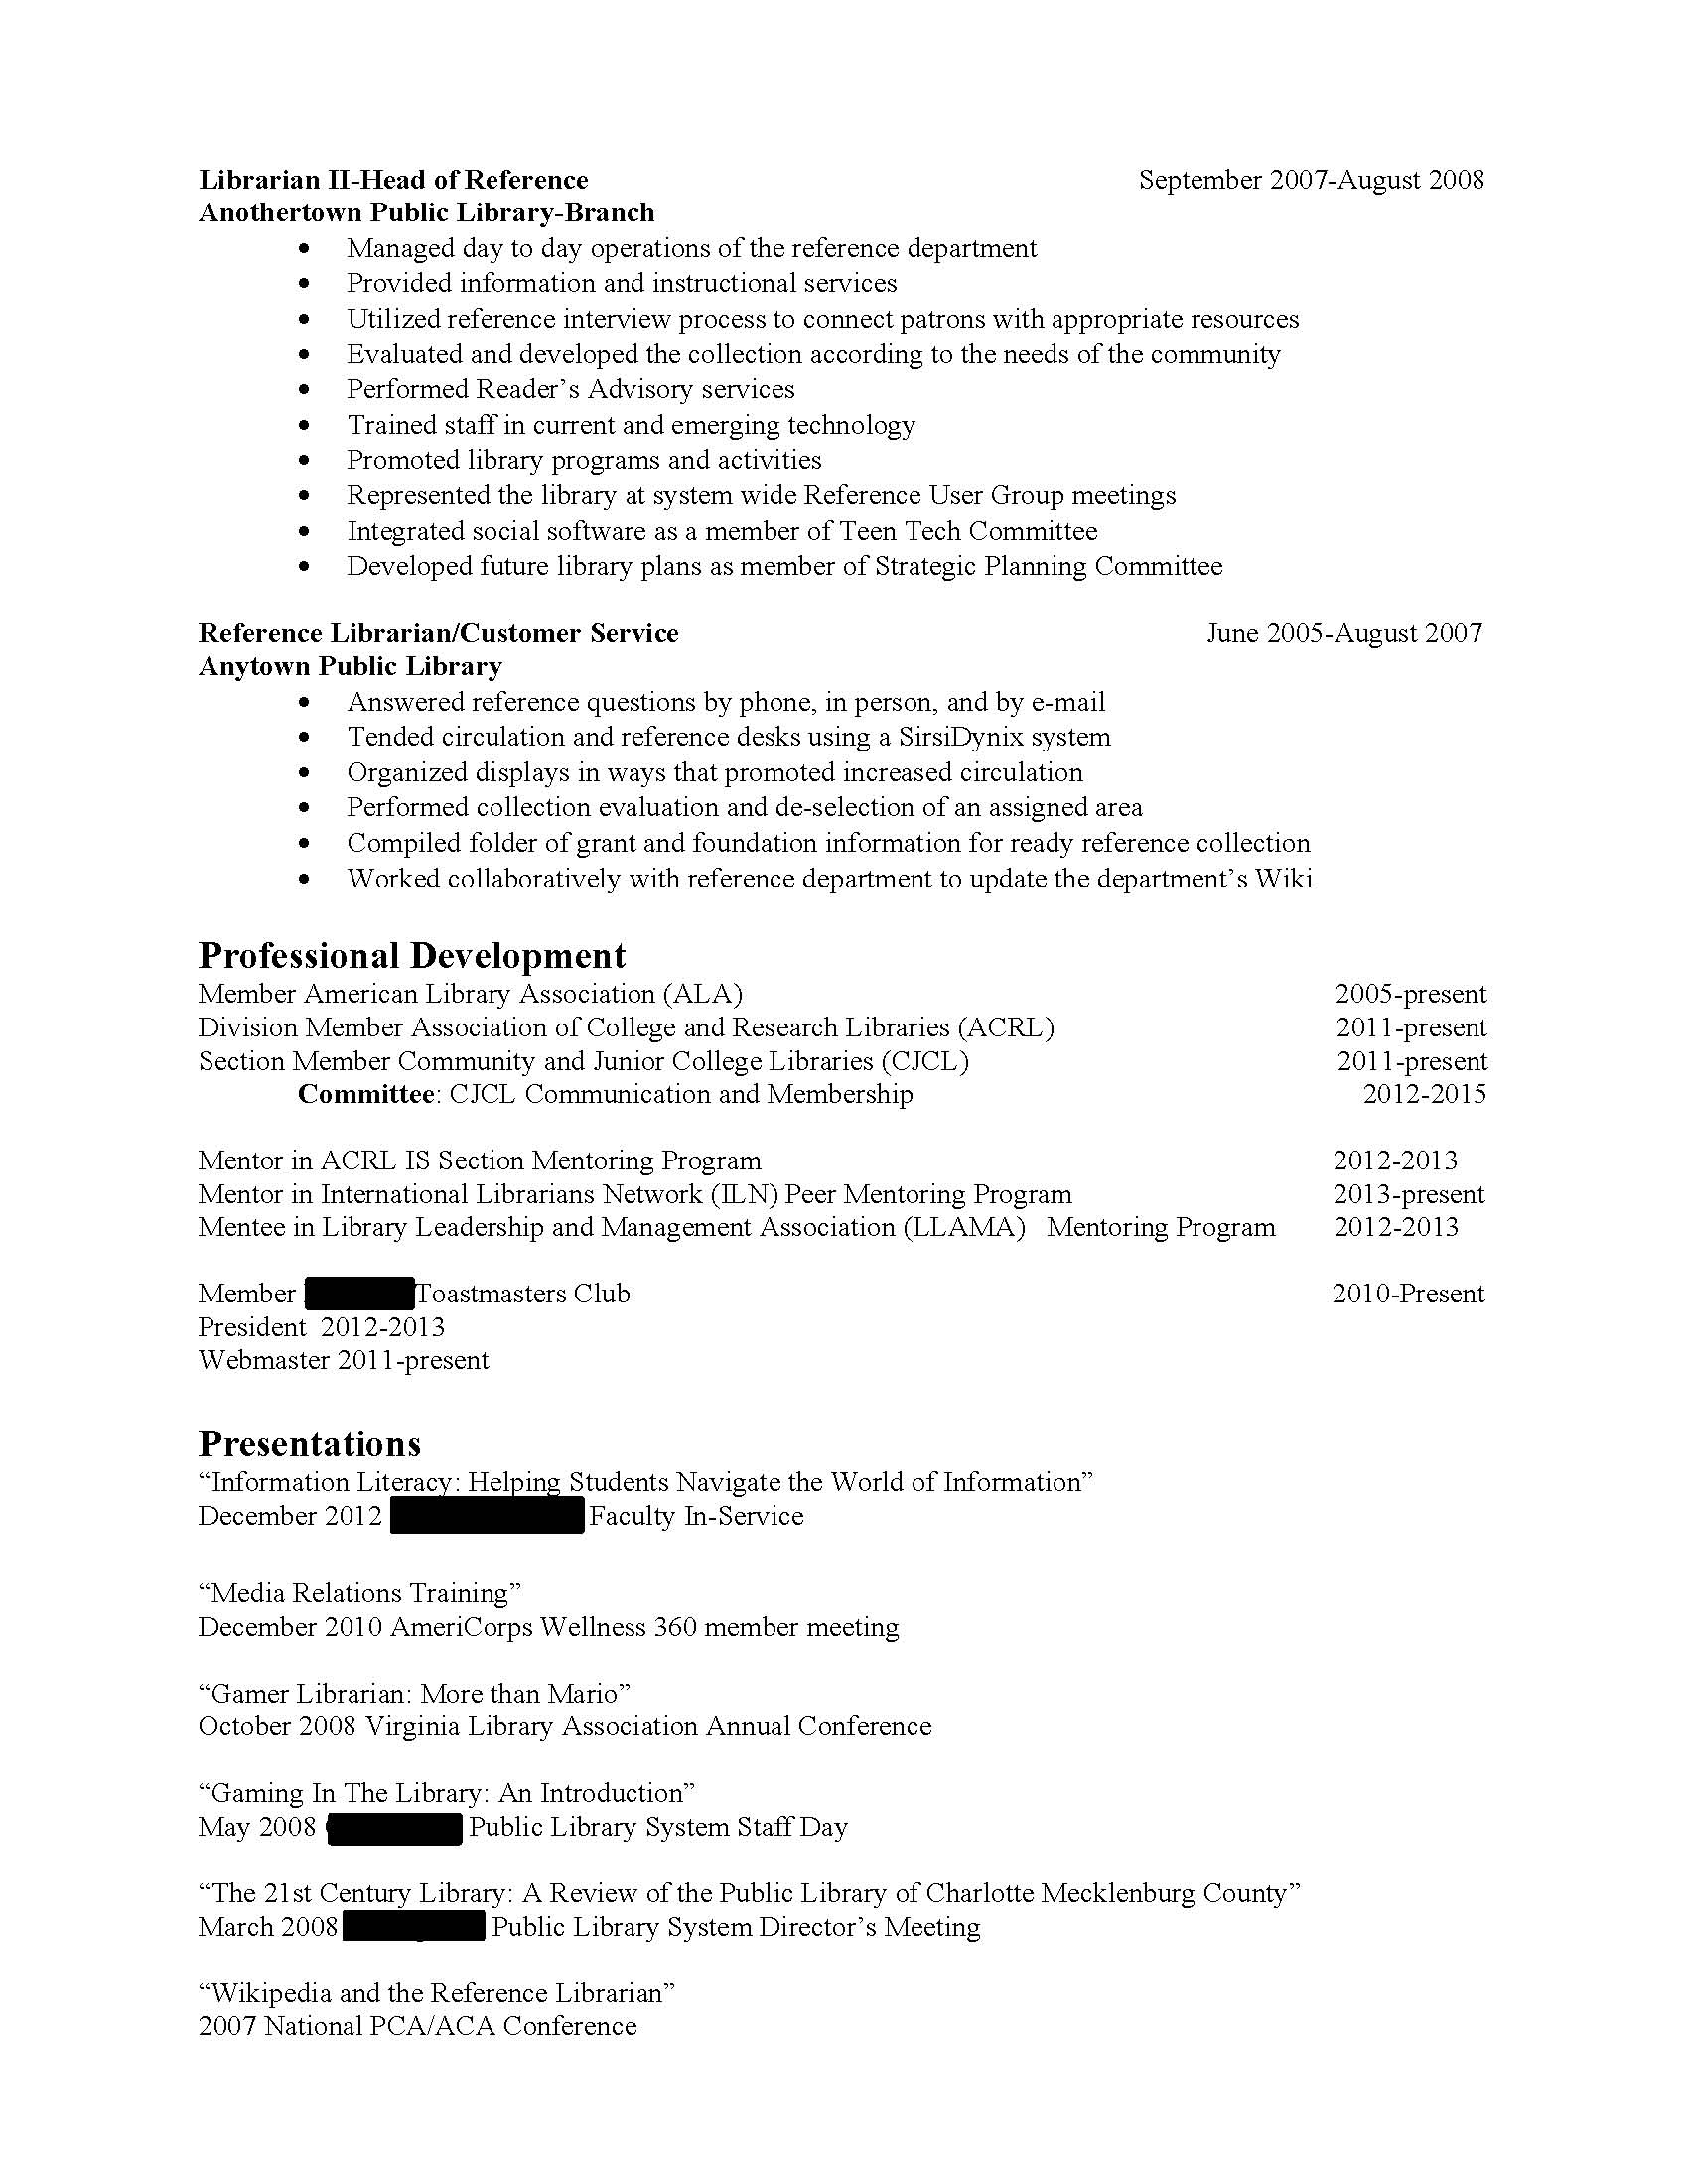 forreview_page_1 forreview_page_2 - Library Resume Sample